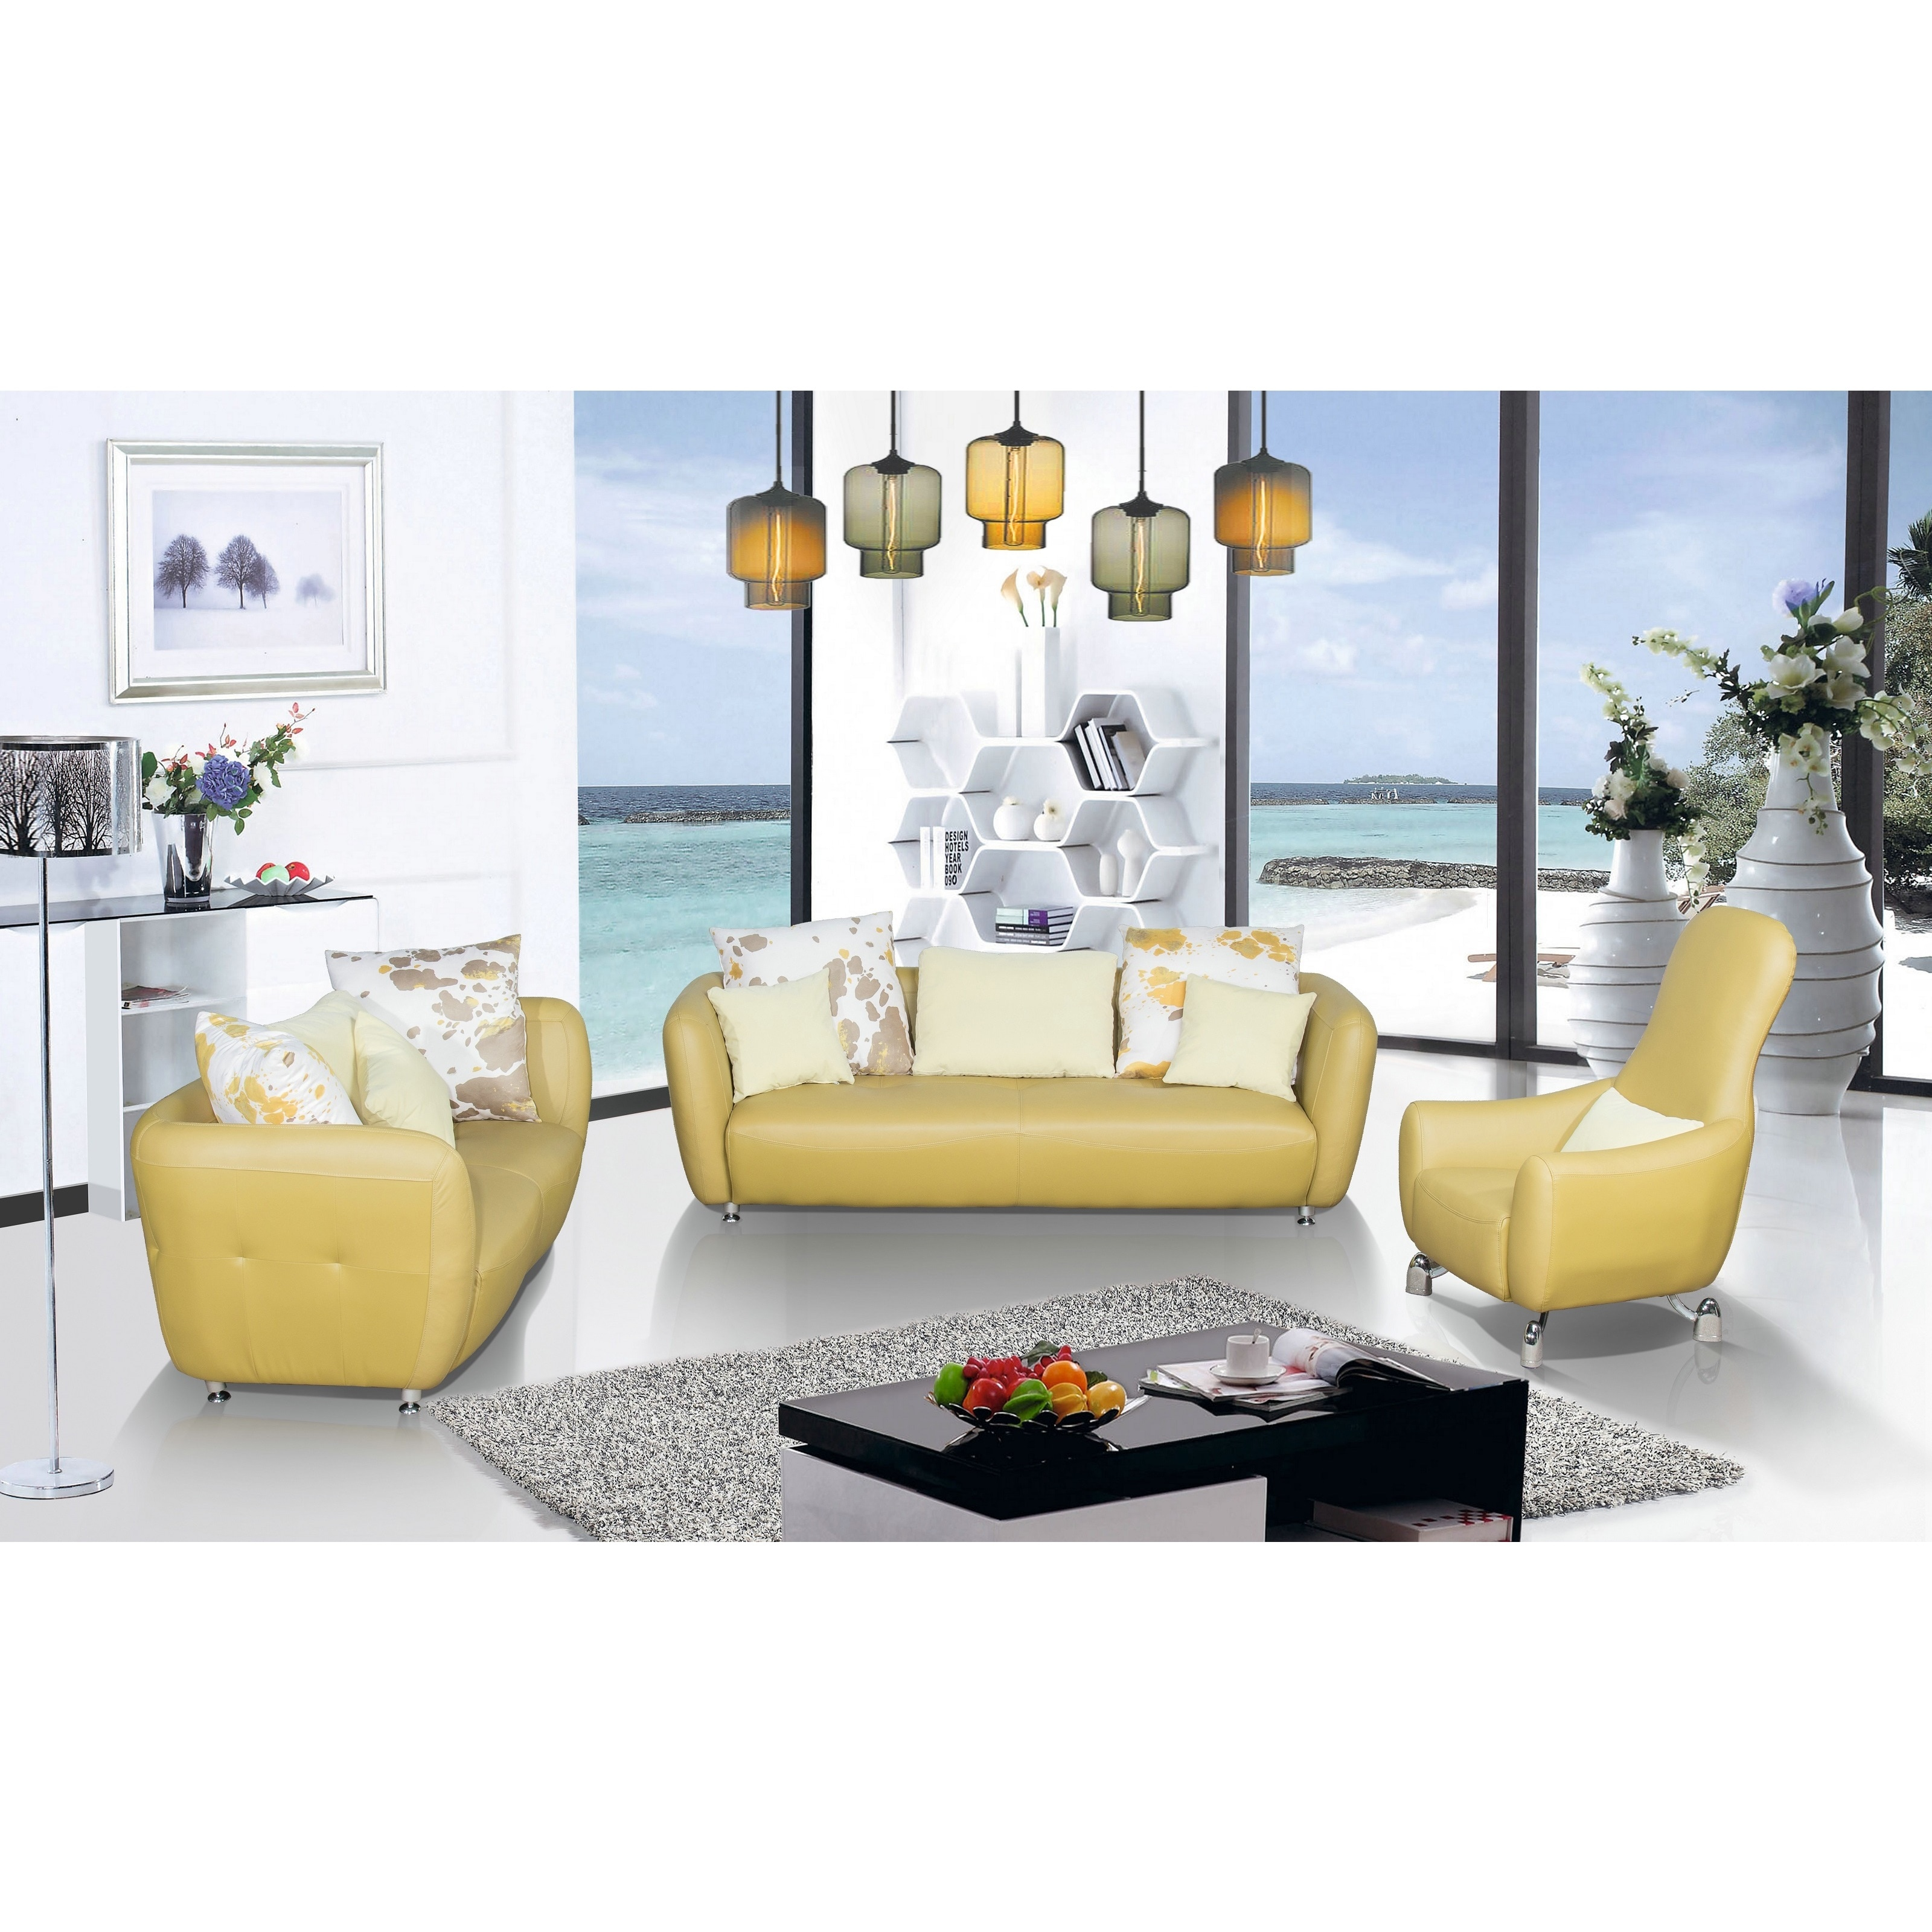 Shop 3-Piece Top Grain Leather Living Room Sofa, Loveseat and Chair ...